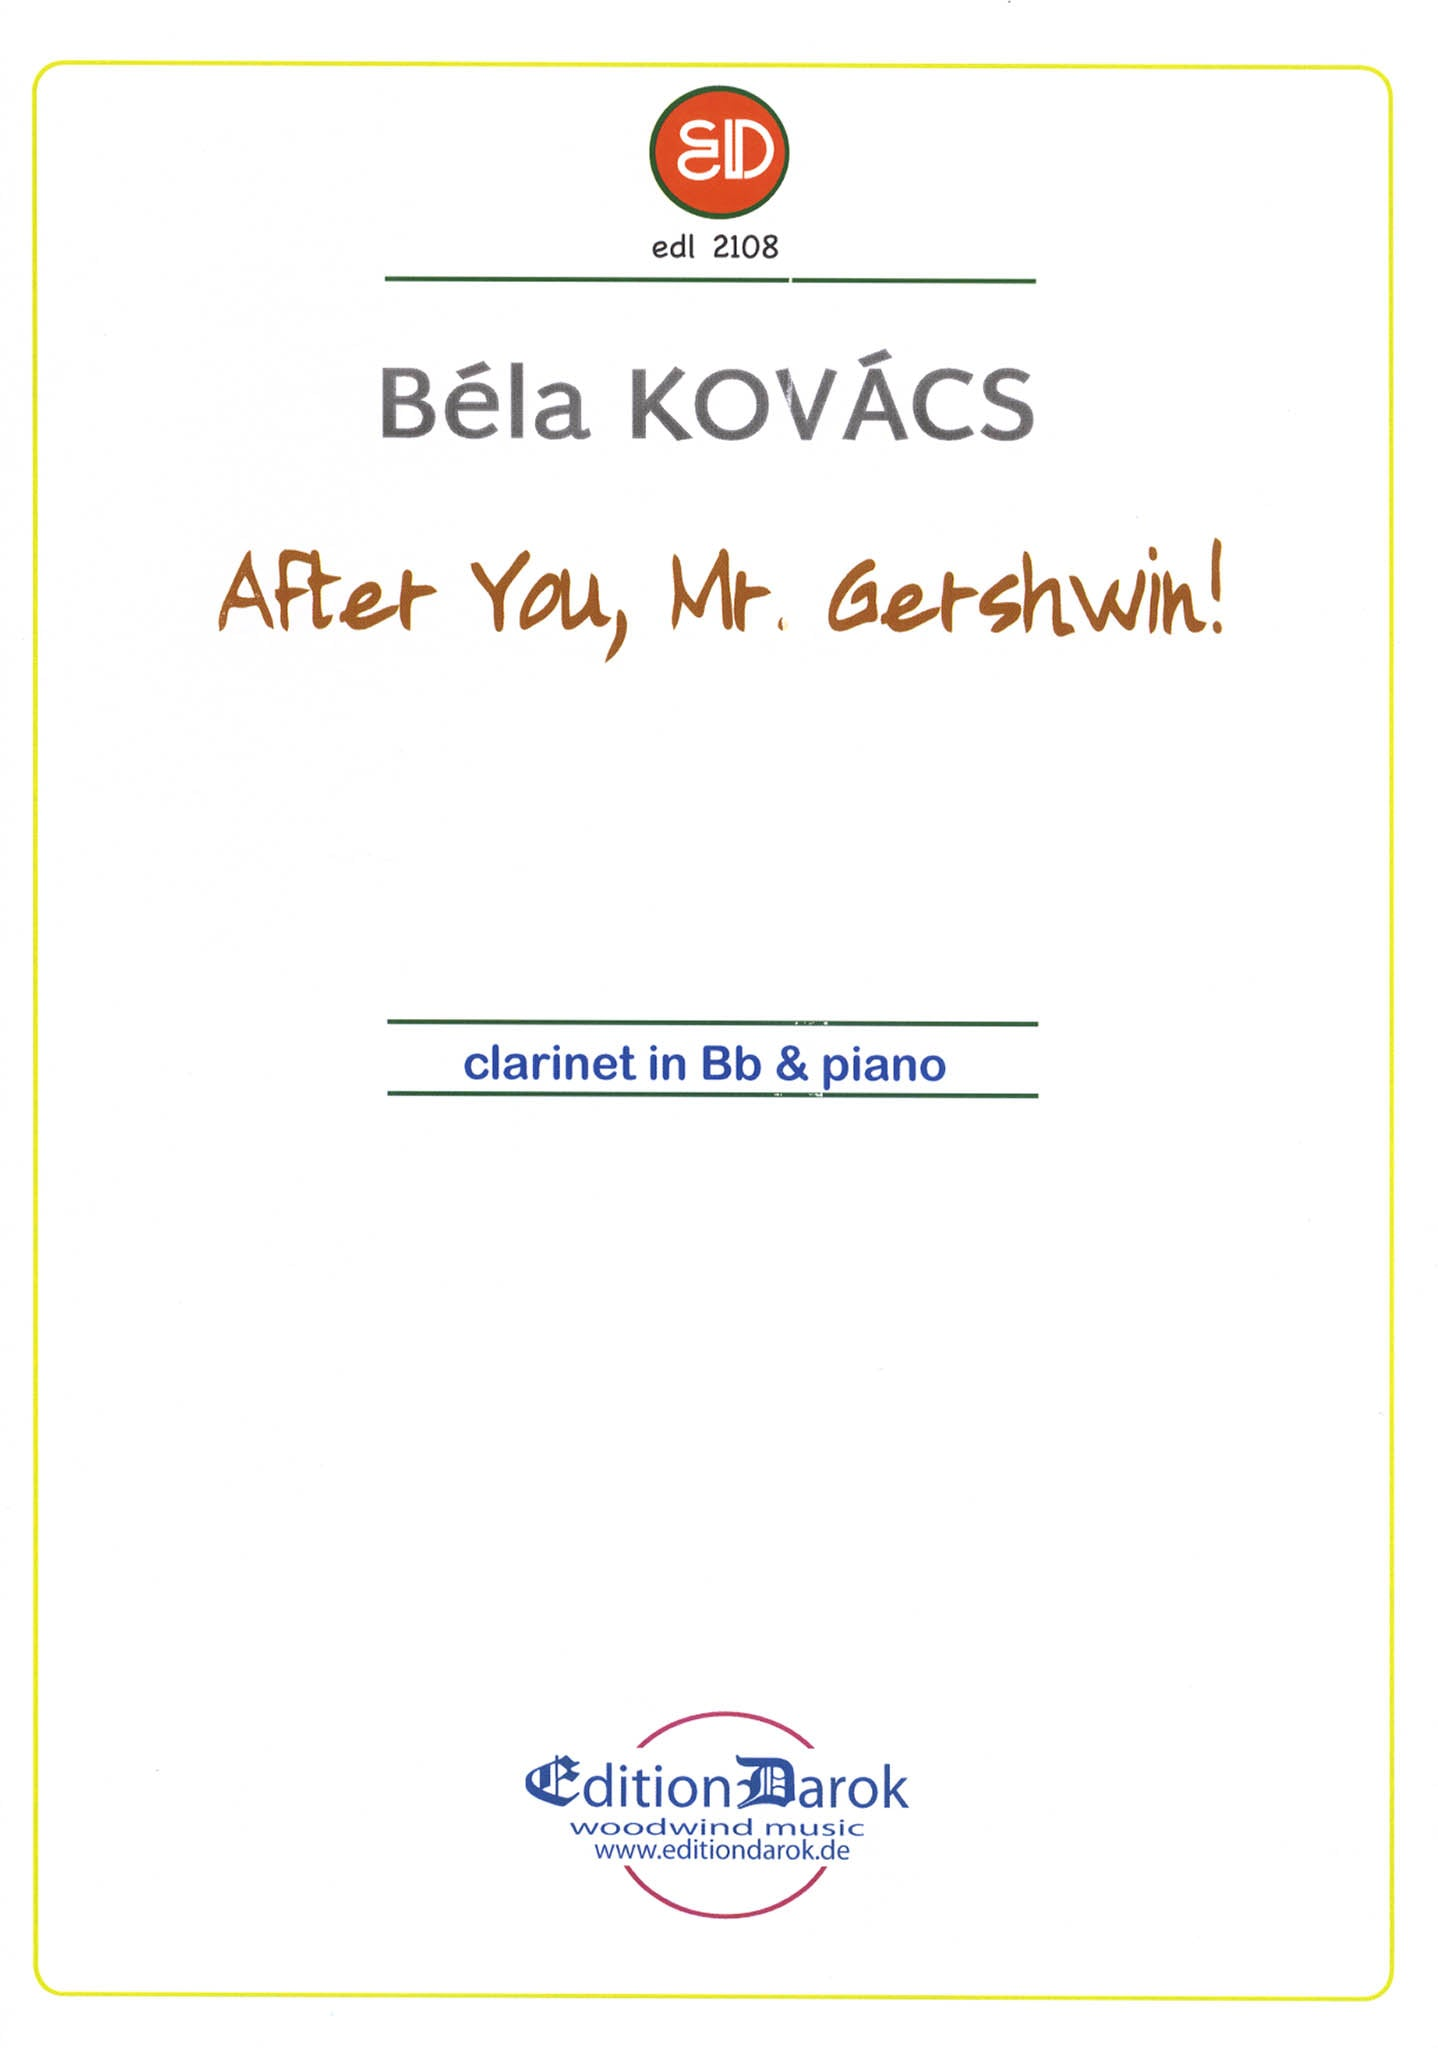 Kovács After You, Mr. Gershwin! Cover